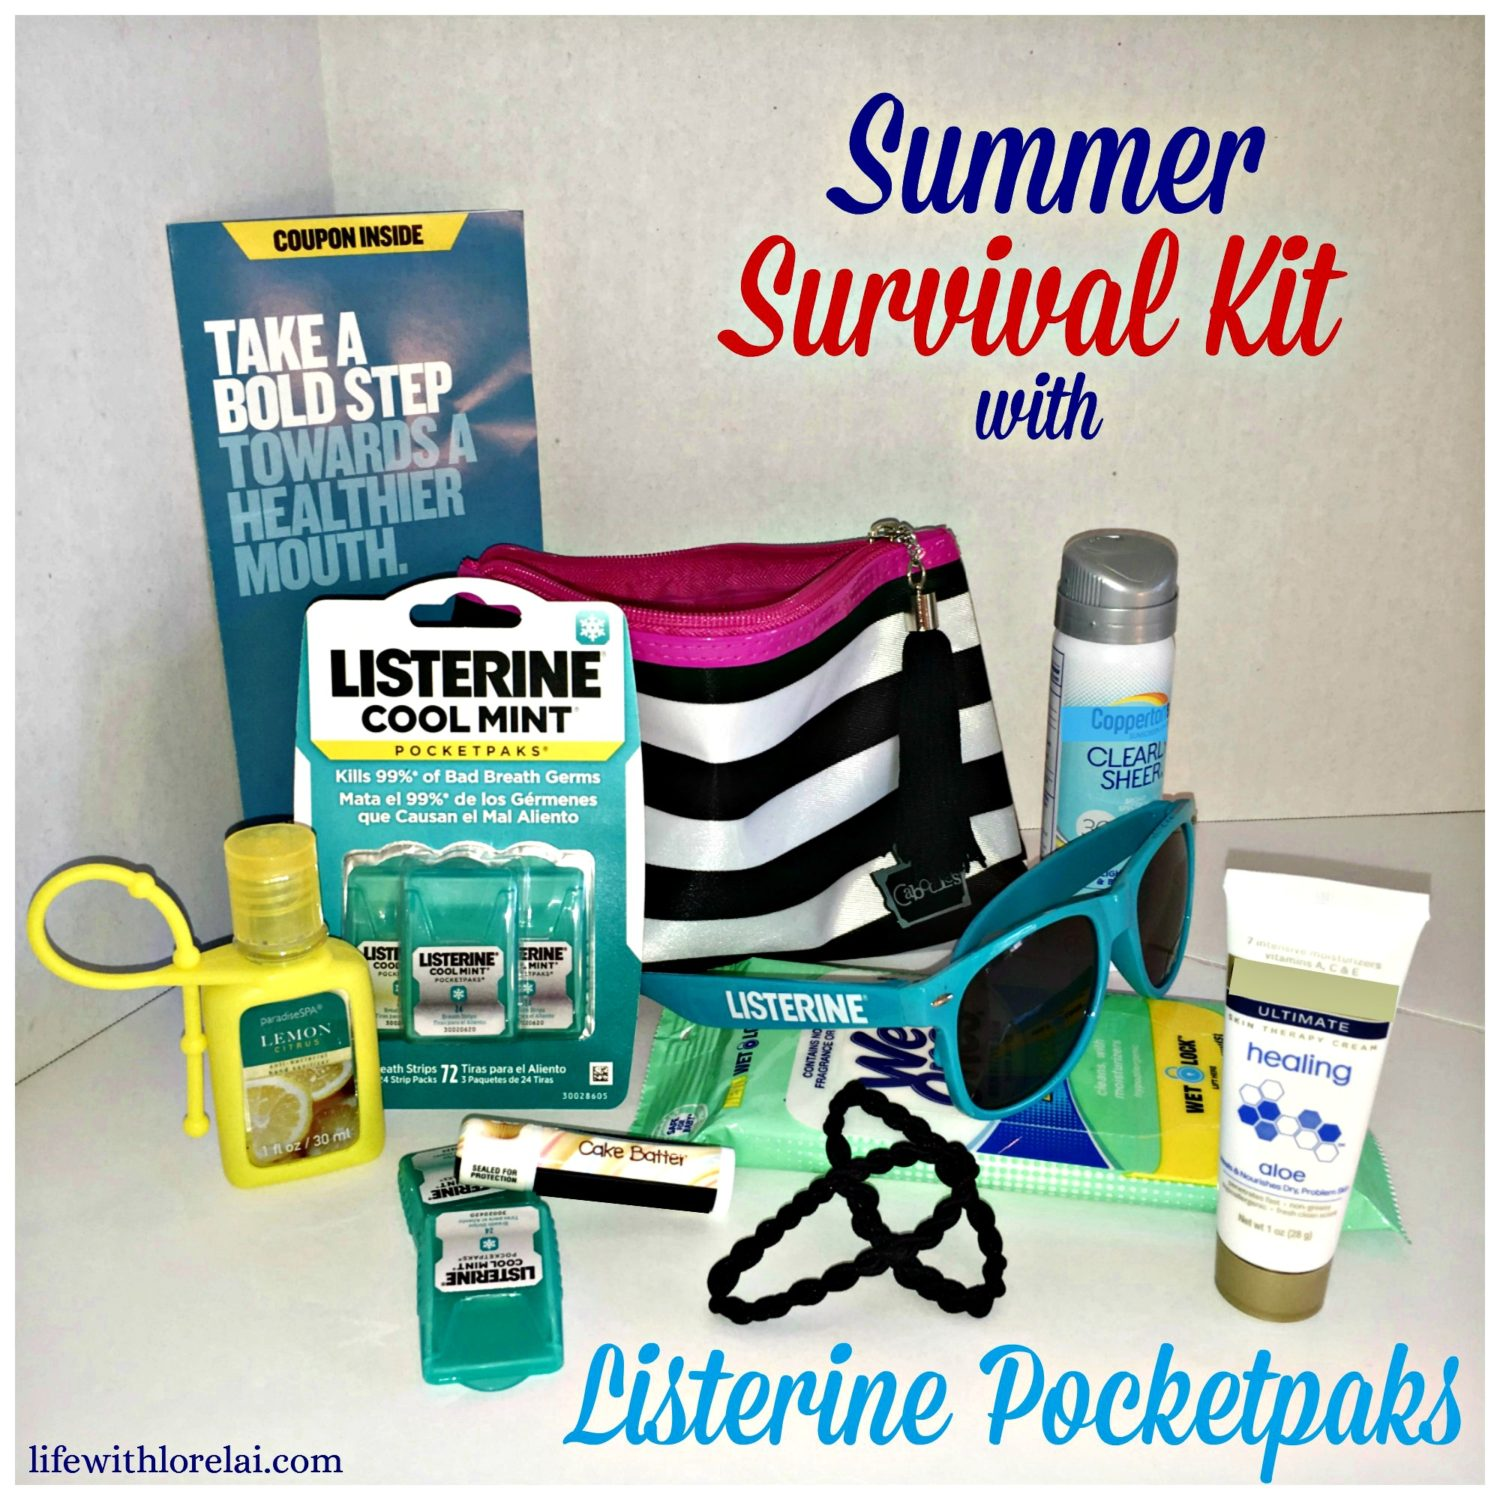 Summer-Survival-Kit-Listerine-Pocketpaks